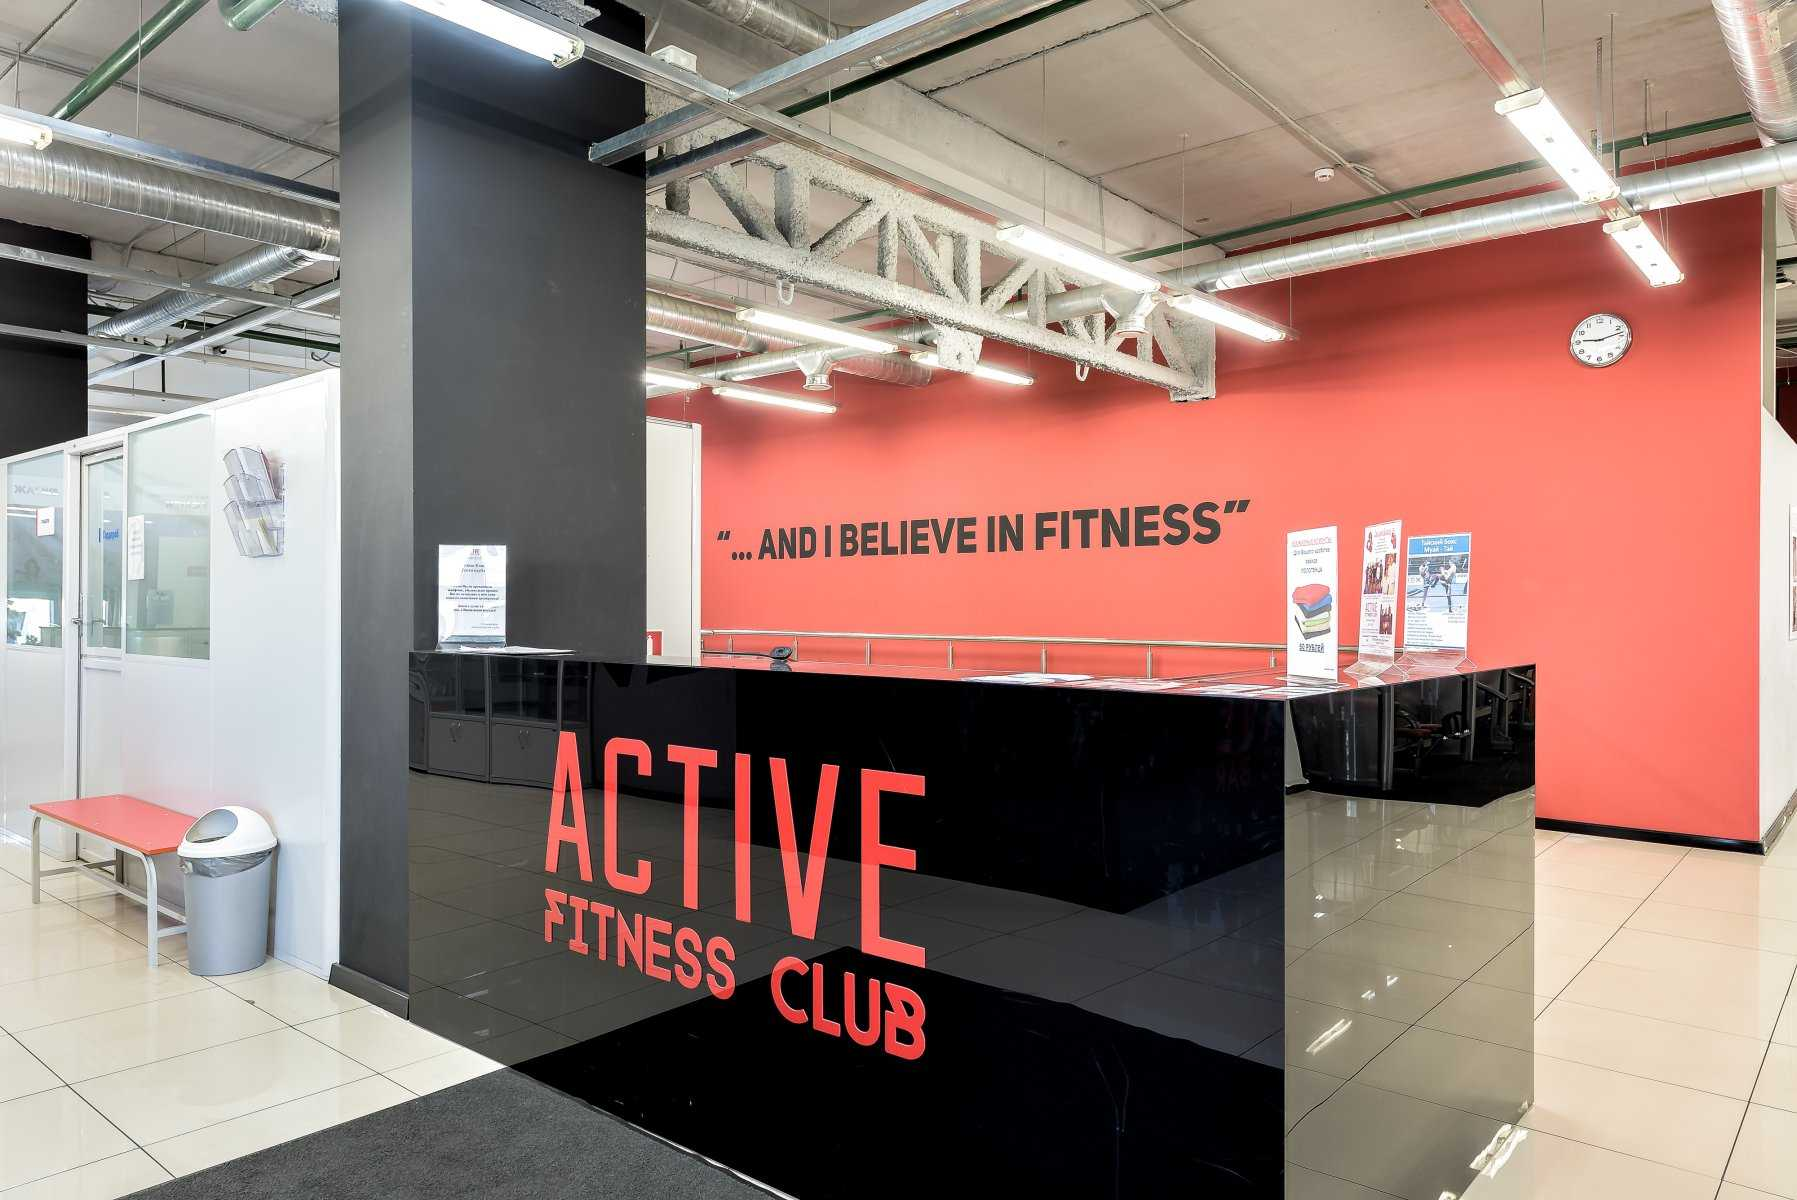 фитнес-клуб Active Fitness Club фото 1